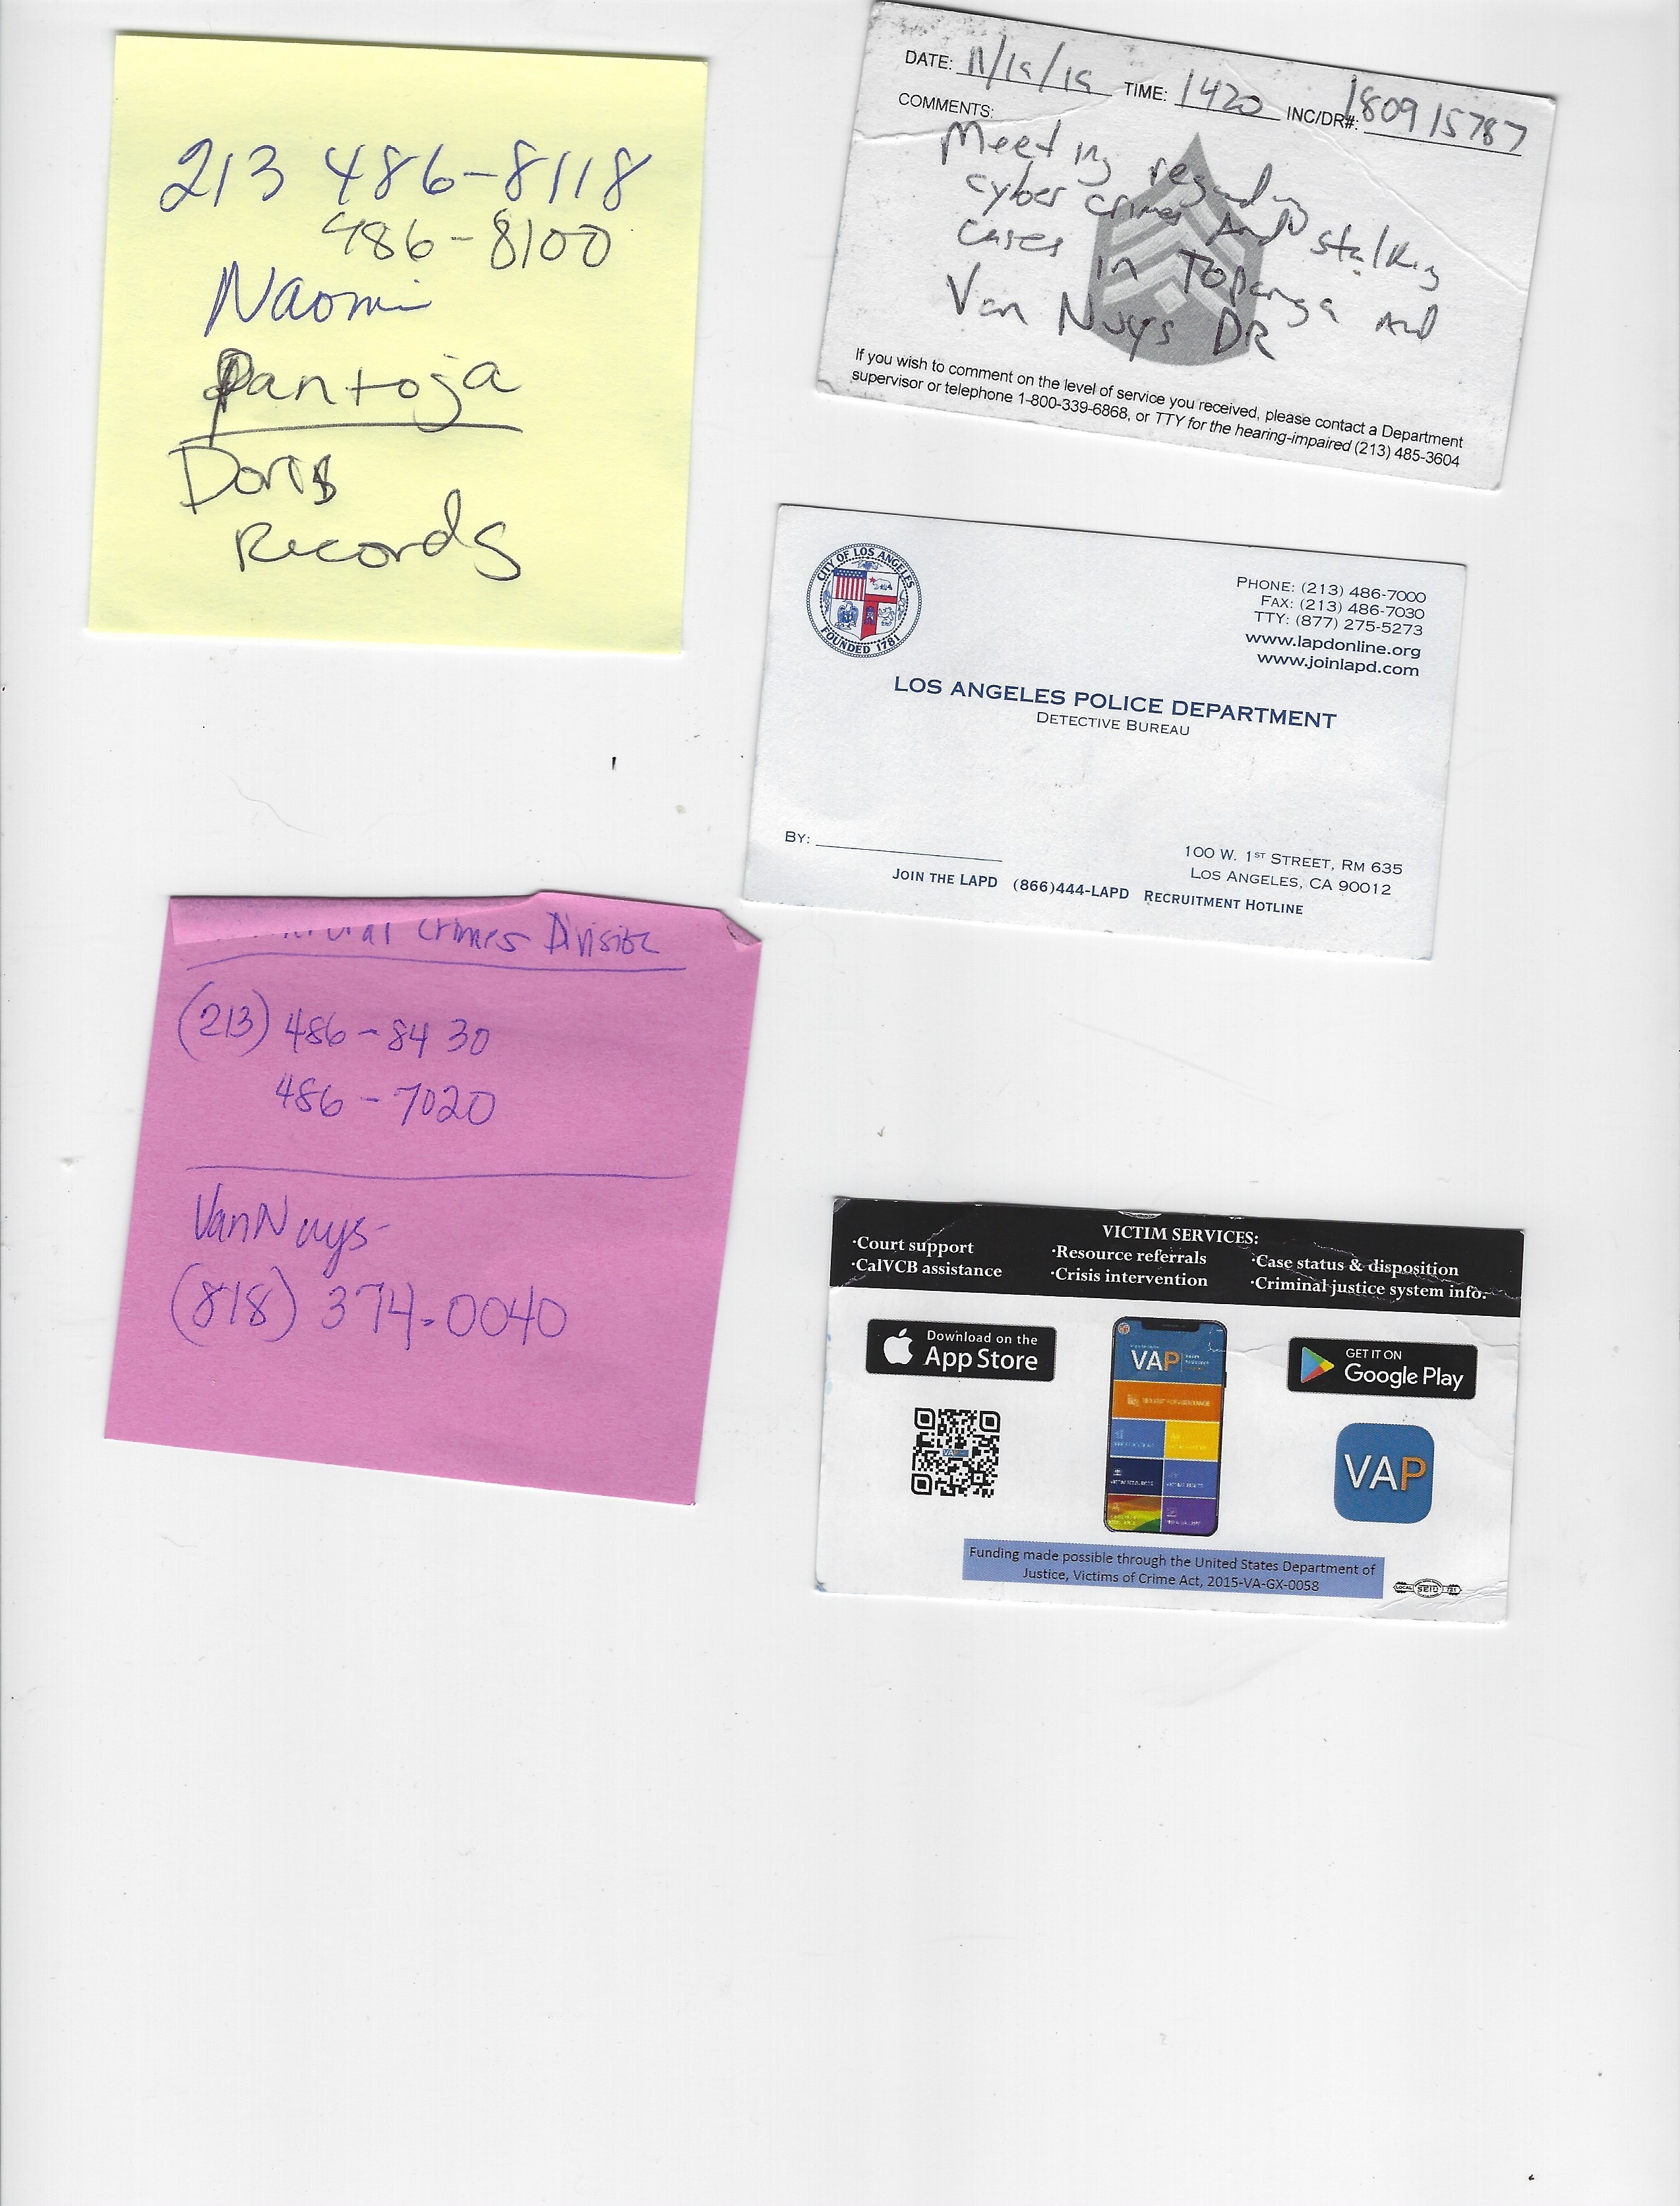 LAPD Downtown business cards phone numbers Terry Rasmussen update new info ordered new full crime reports with supplements copy 2